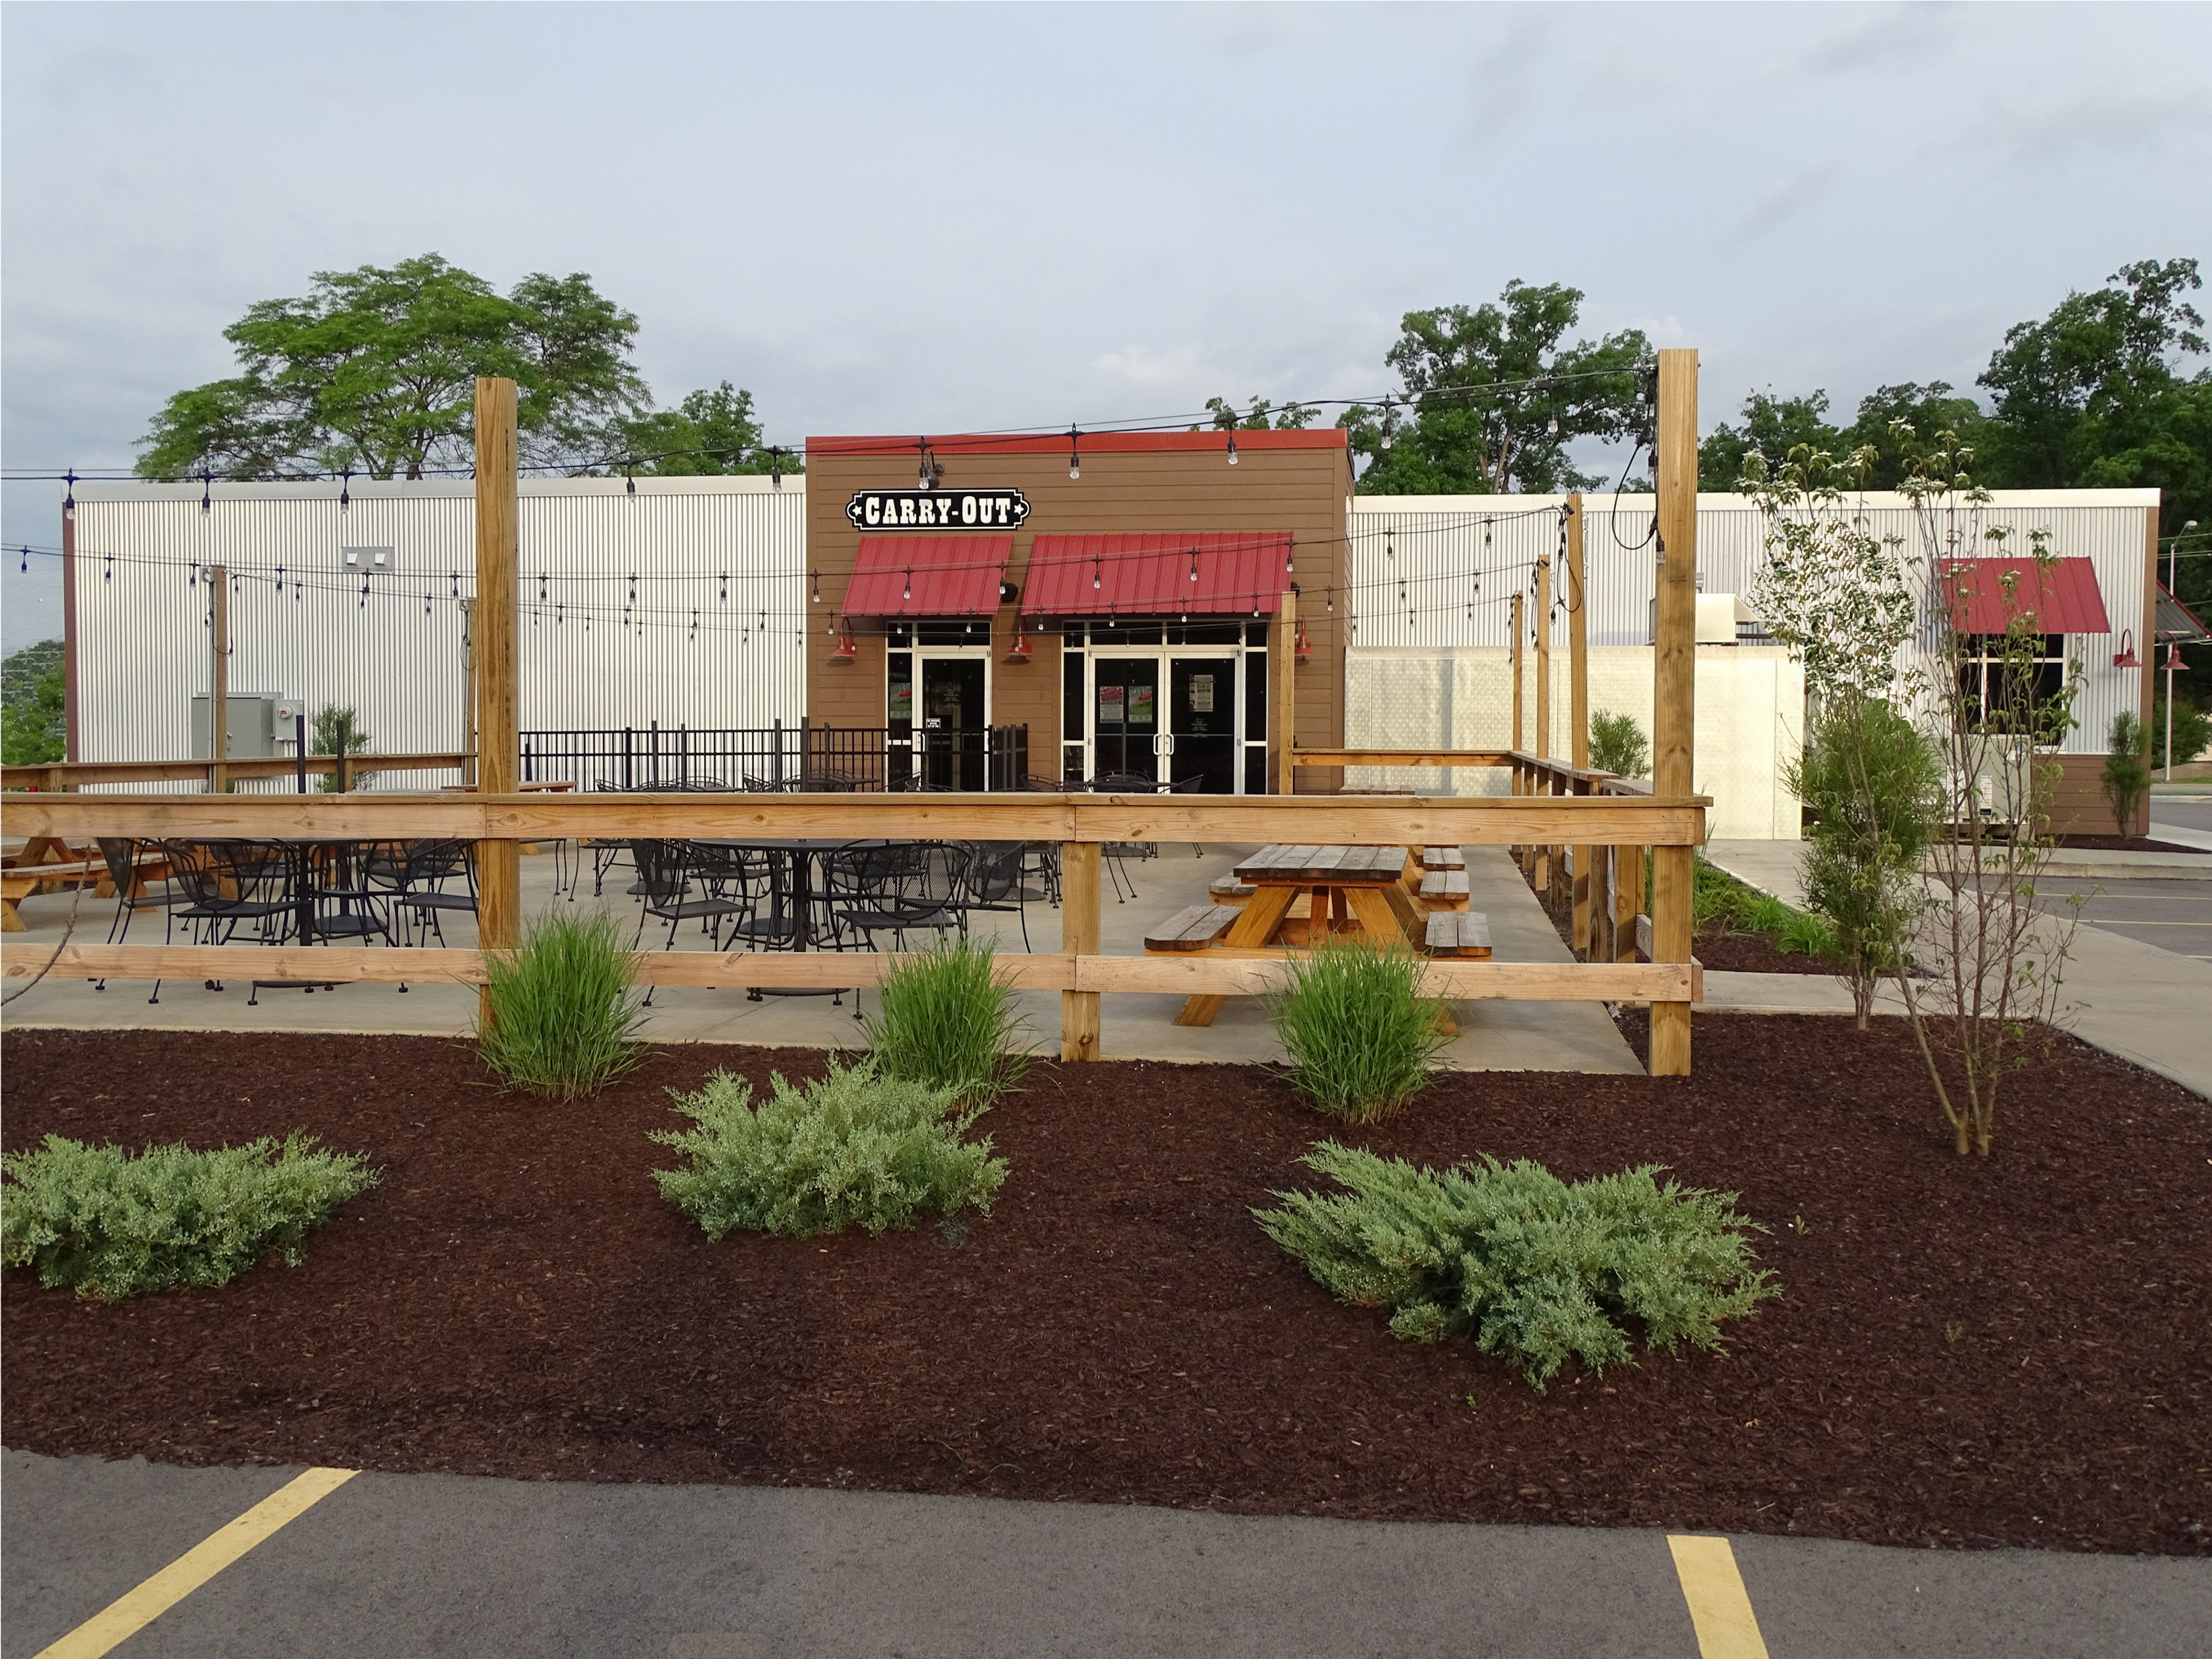 Carry out area of new restaurant in Ft. Wayne